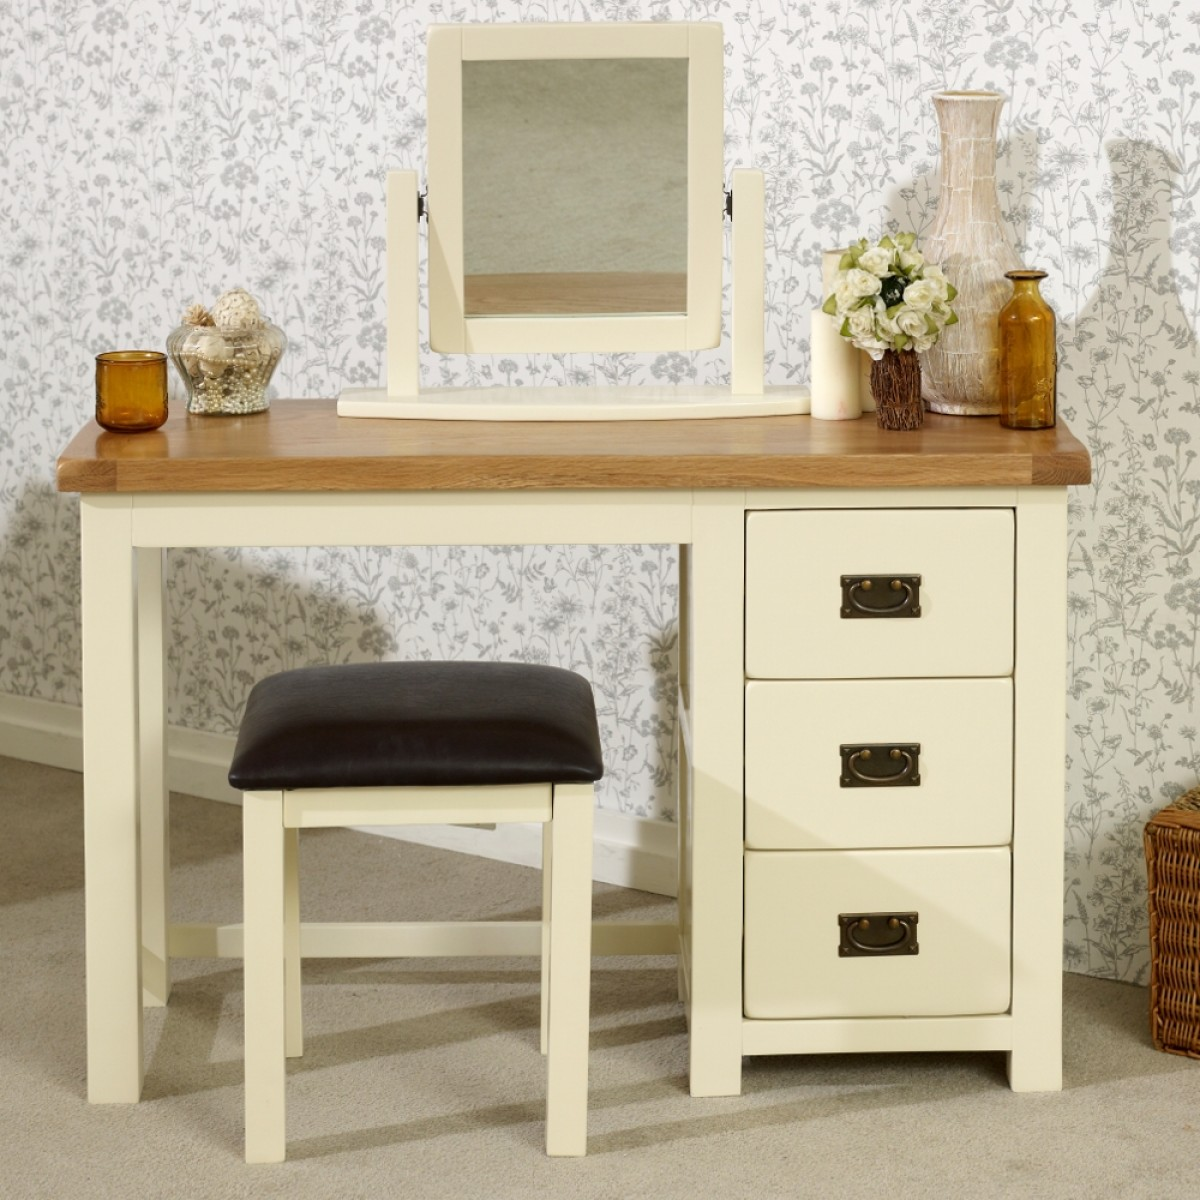 online retailer c747a ee063 New Hampshire Cream and Oak Single Pedestal Dressing Table